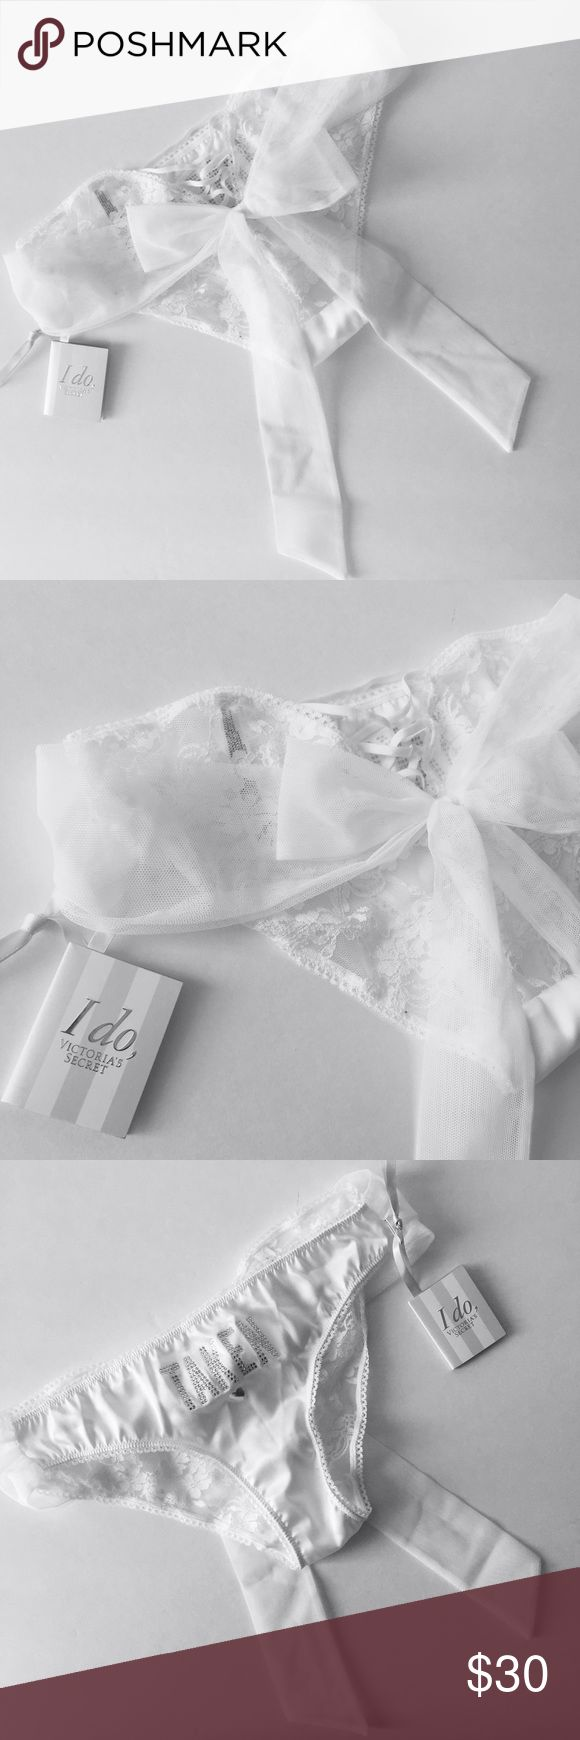 """Victoria's Secret """"Taken"""" Lace Bridal Underwear Brand new with tags still attached!  *Victoria's Secret Bridal Collection lace panties   *""""Taken"""" written on front   *corset bow tie on the back Victoria's Secret Intimates & Sleepwear Panties"""